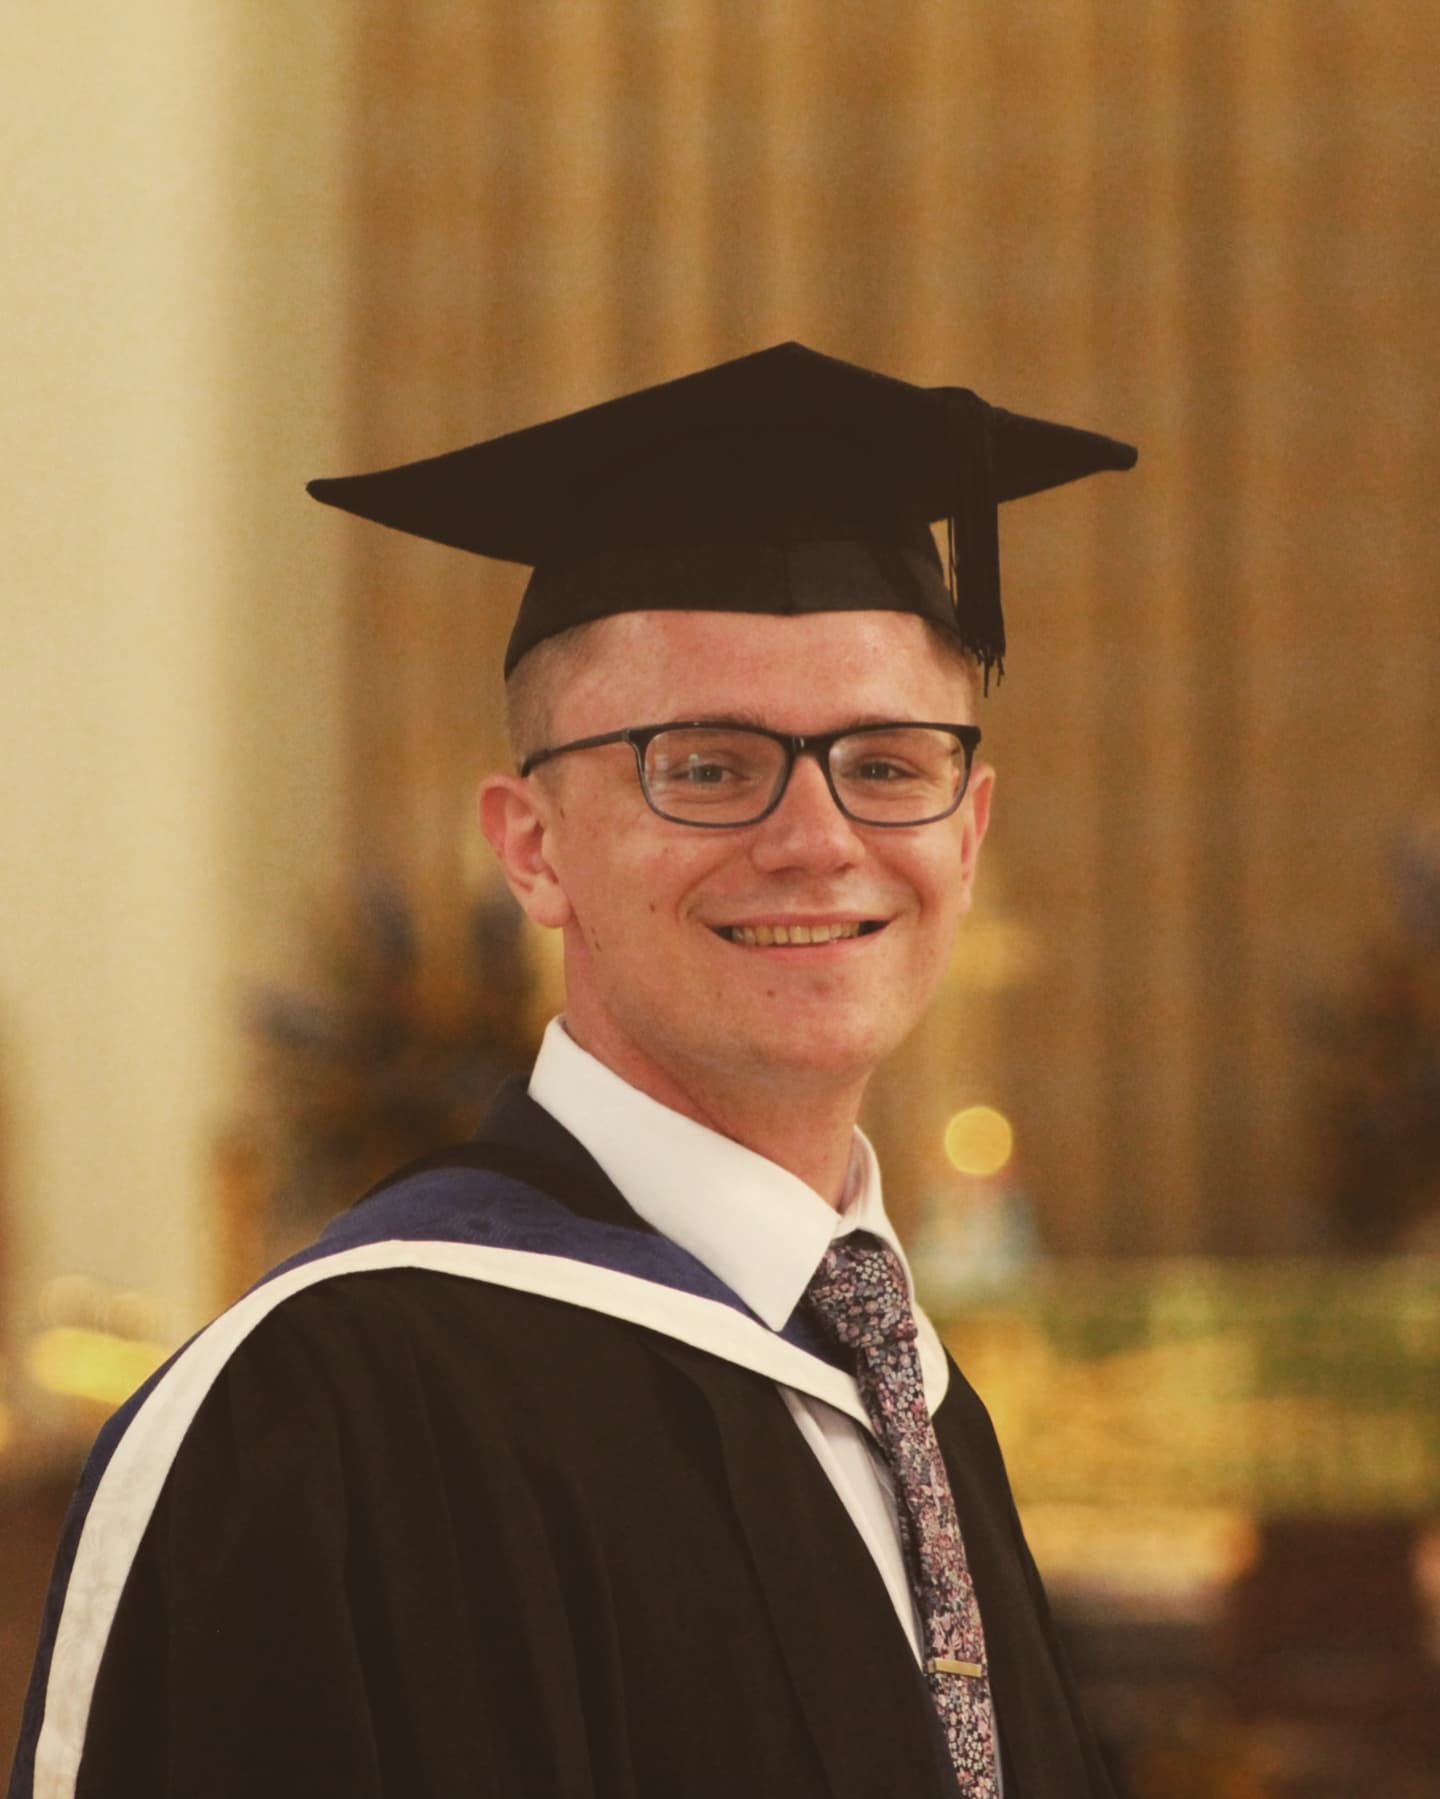 Ben Uden at his graduation from the University of Surrey. Ben won the faculty student of the year award for his placement at London Symphony Orchestra